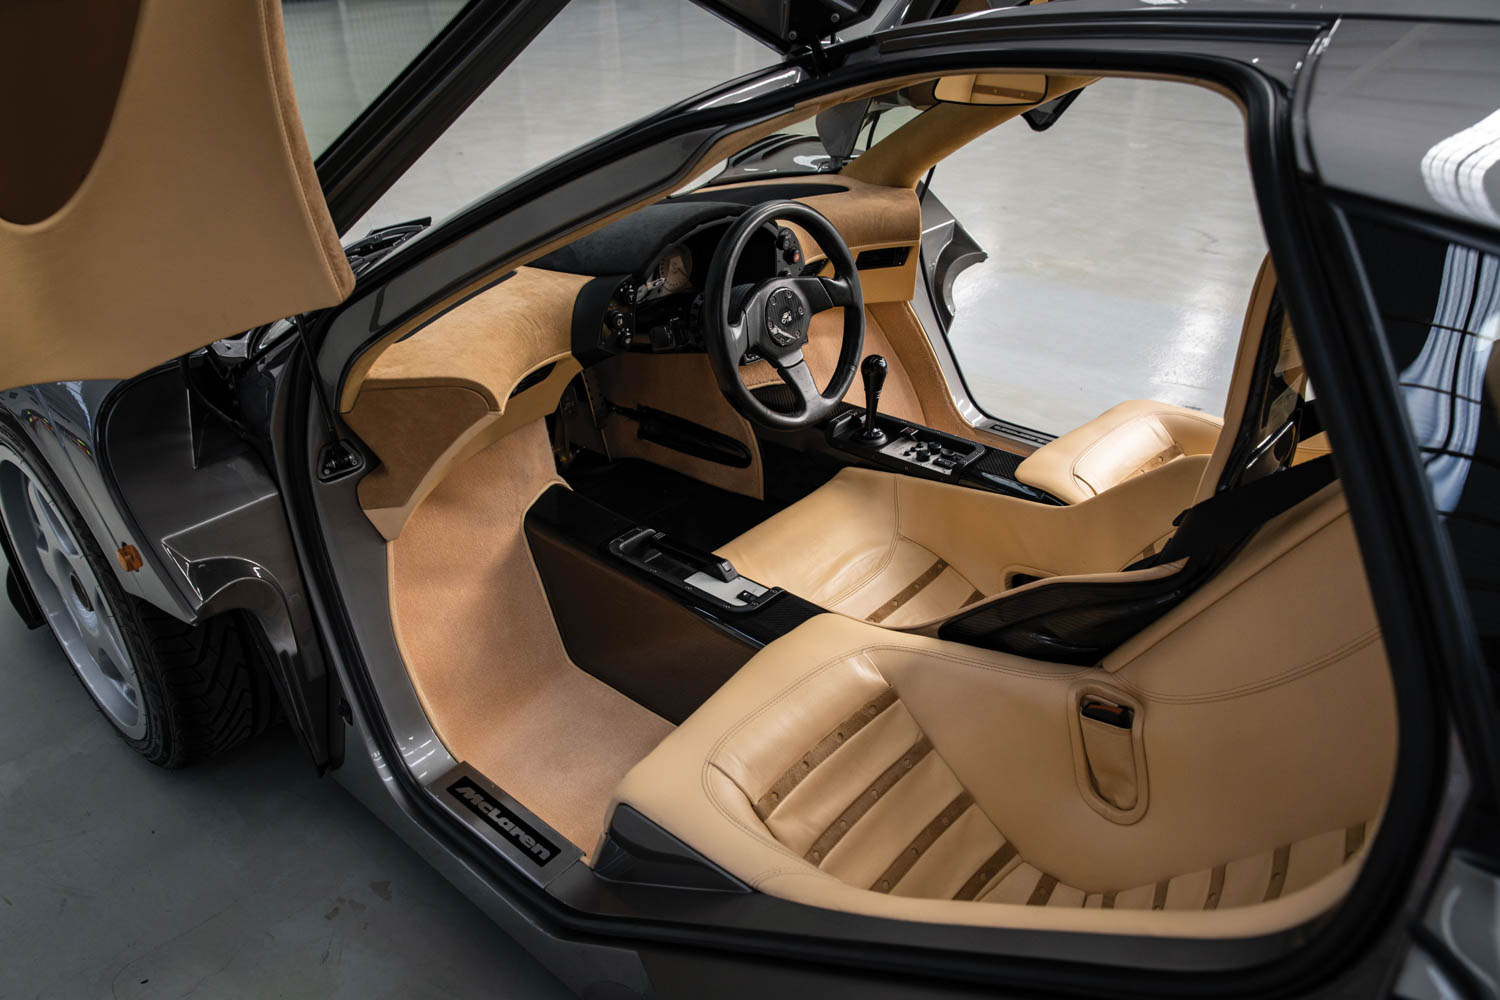 1994 McLaren F1 'LM-Specification' interior